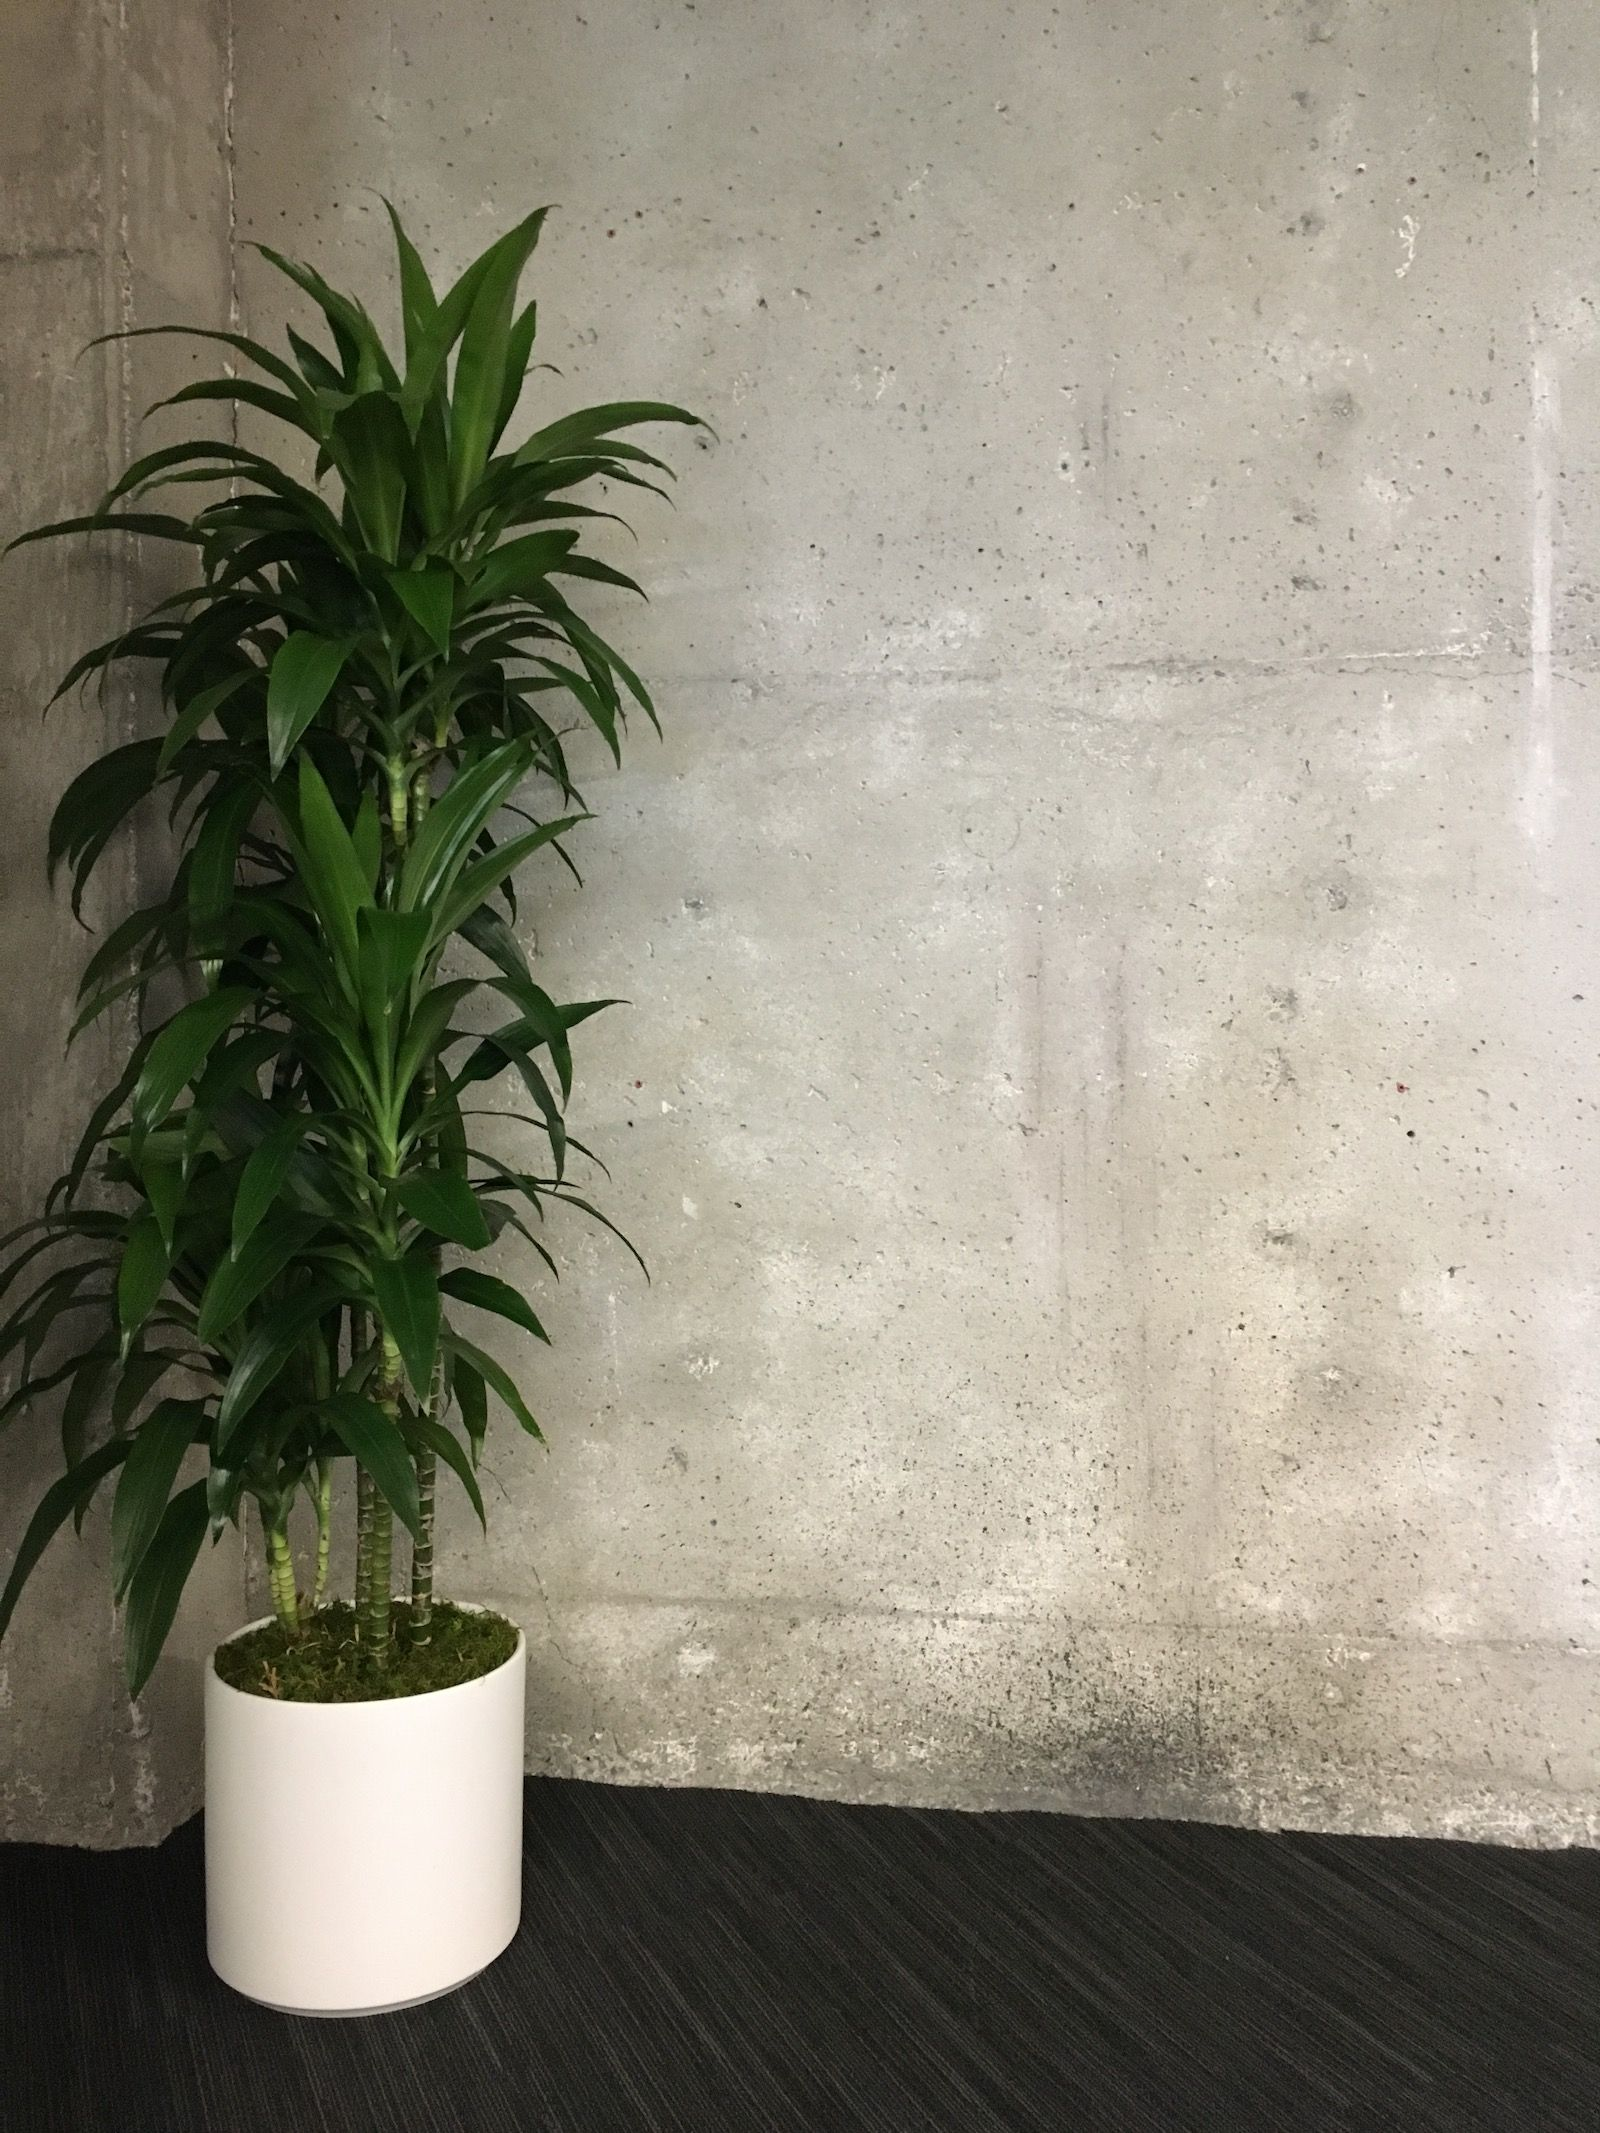 Office Greenery The Best Plants For Offices With No Sun La Residence Plant Care Tips And More Best Office Plants Plants Office Plants